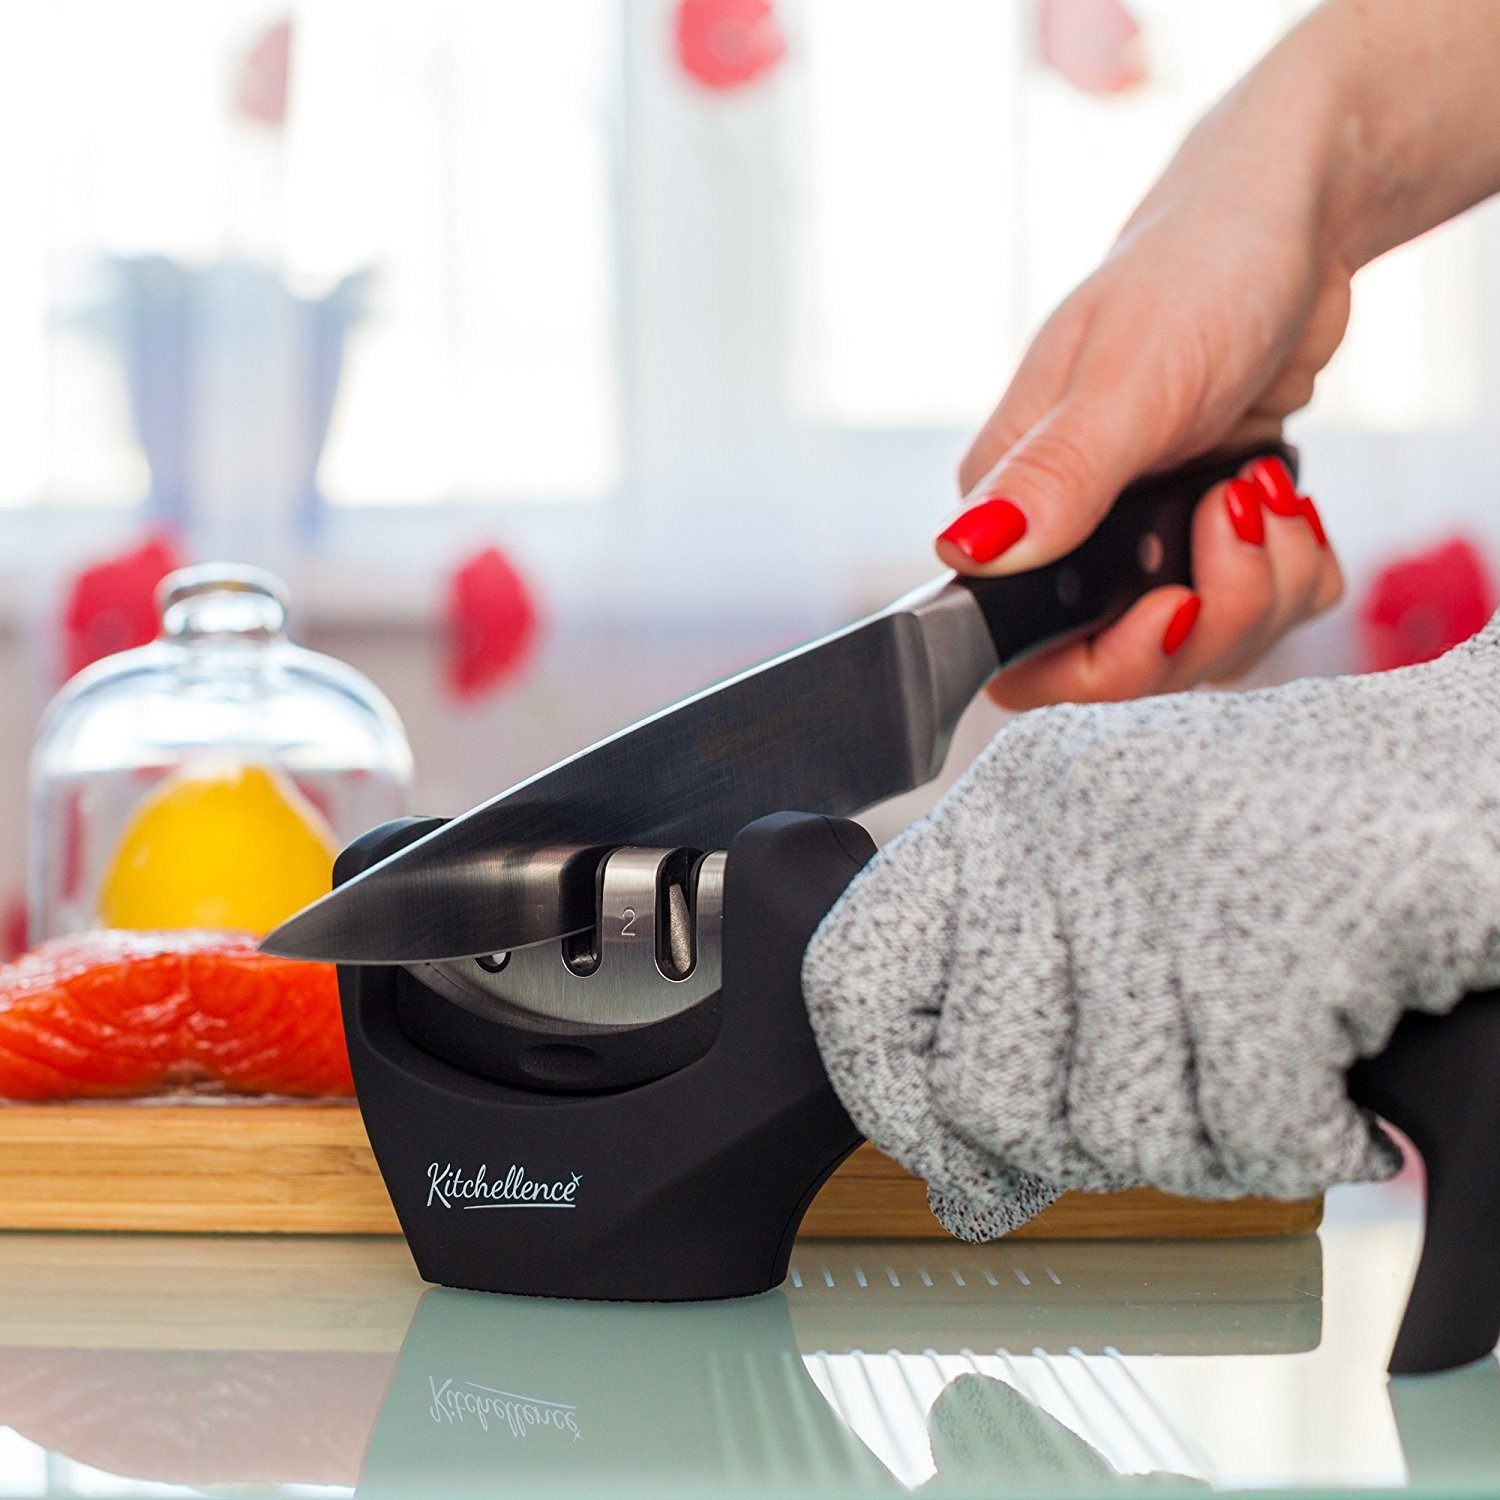 Kitchen Knife Sharpener - 3-Stage Knife Sharpening Tool Helps Repair, Restore and Polish Blades - Cut-Resistant Glove Included (Black-Grey)